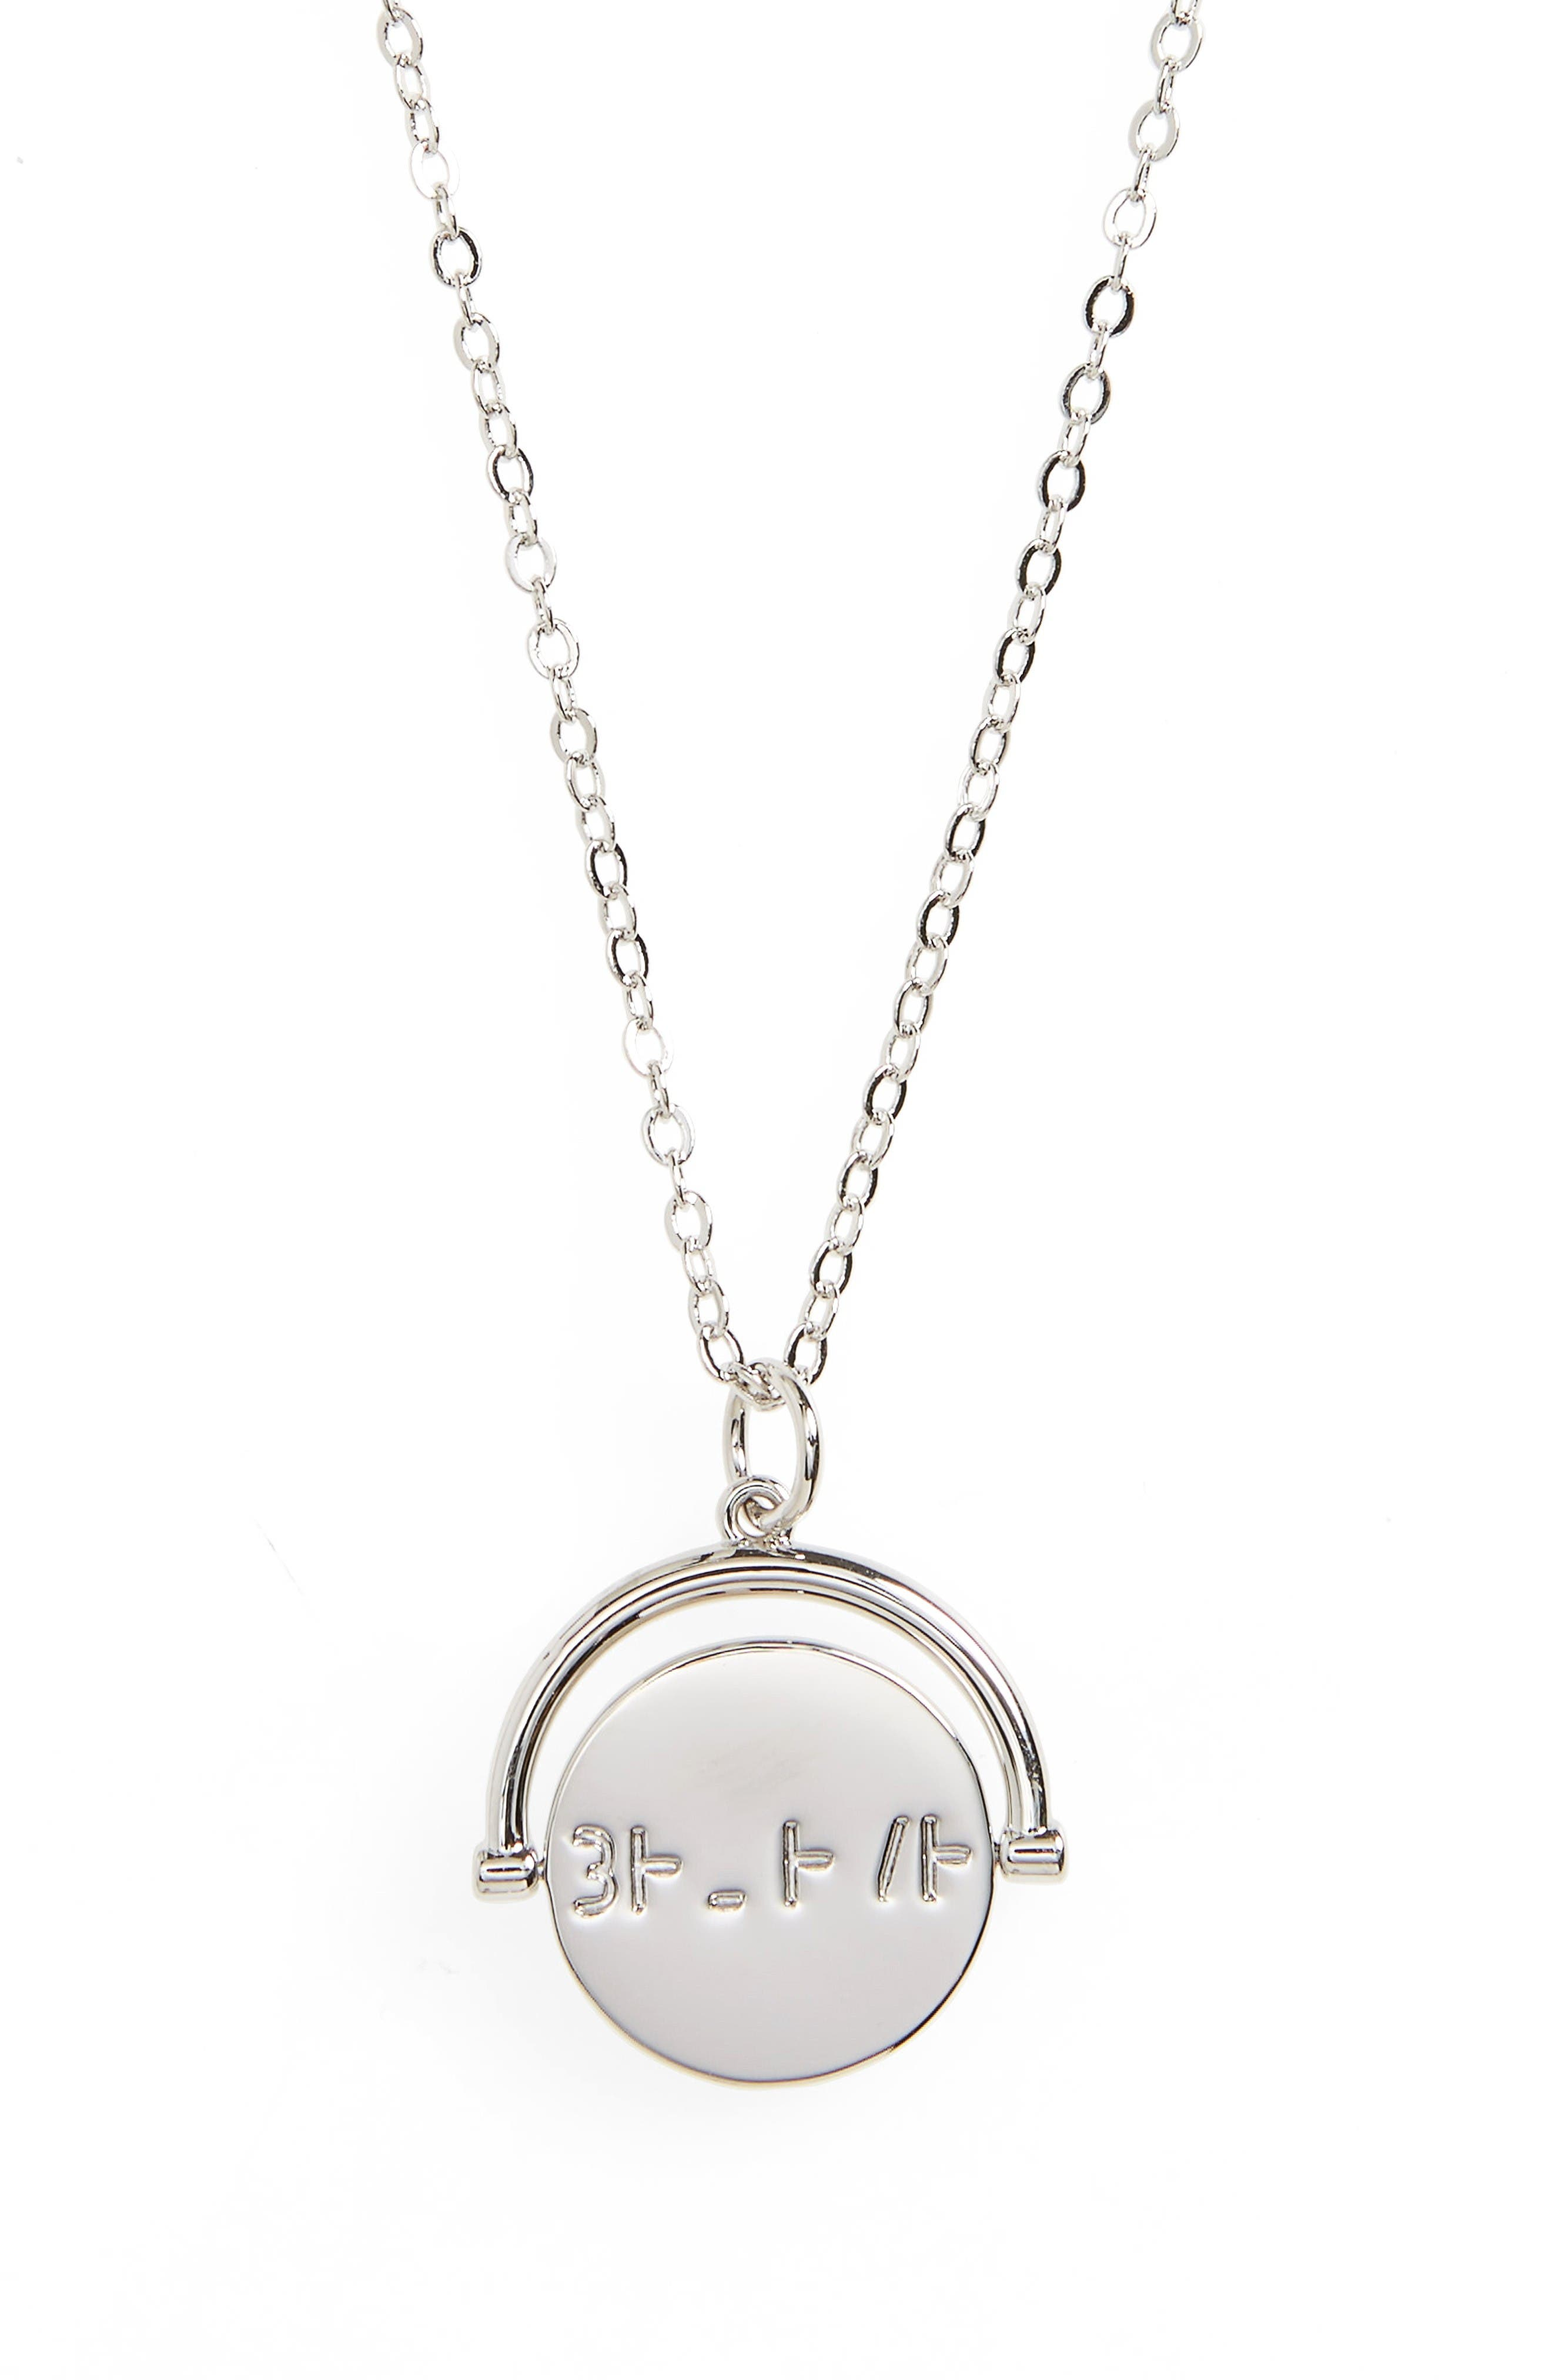 Believe Love Code Charm Necklace,                         Main,                         color, Believe/ Silver